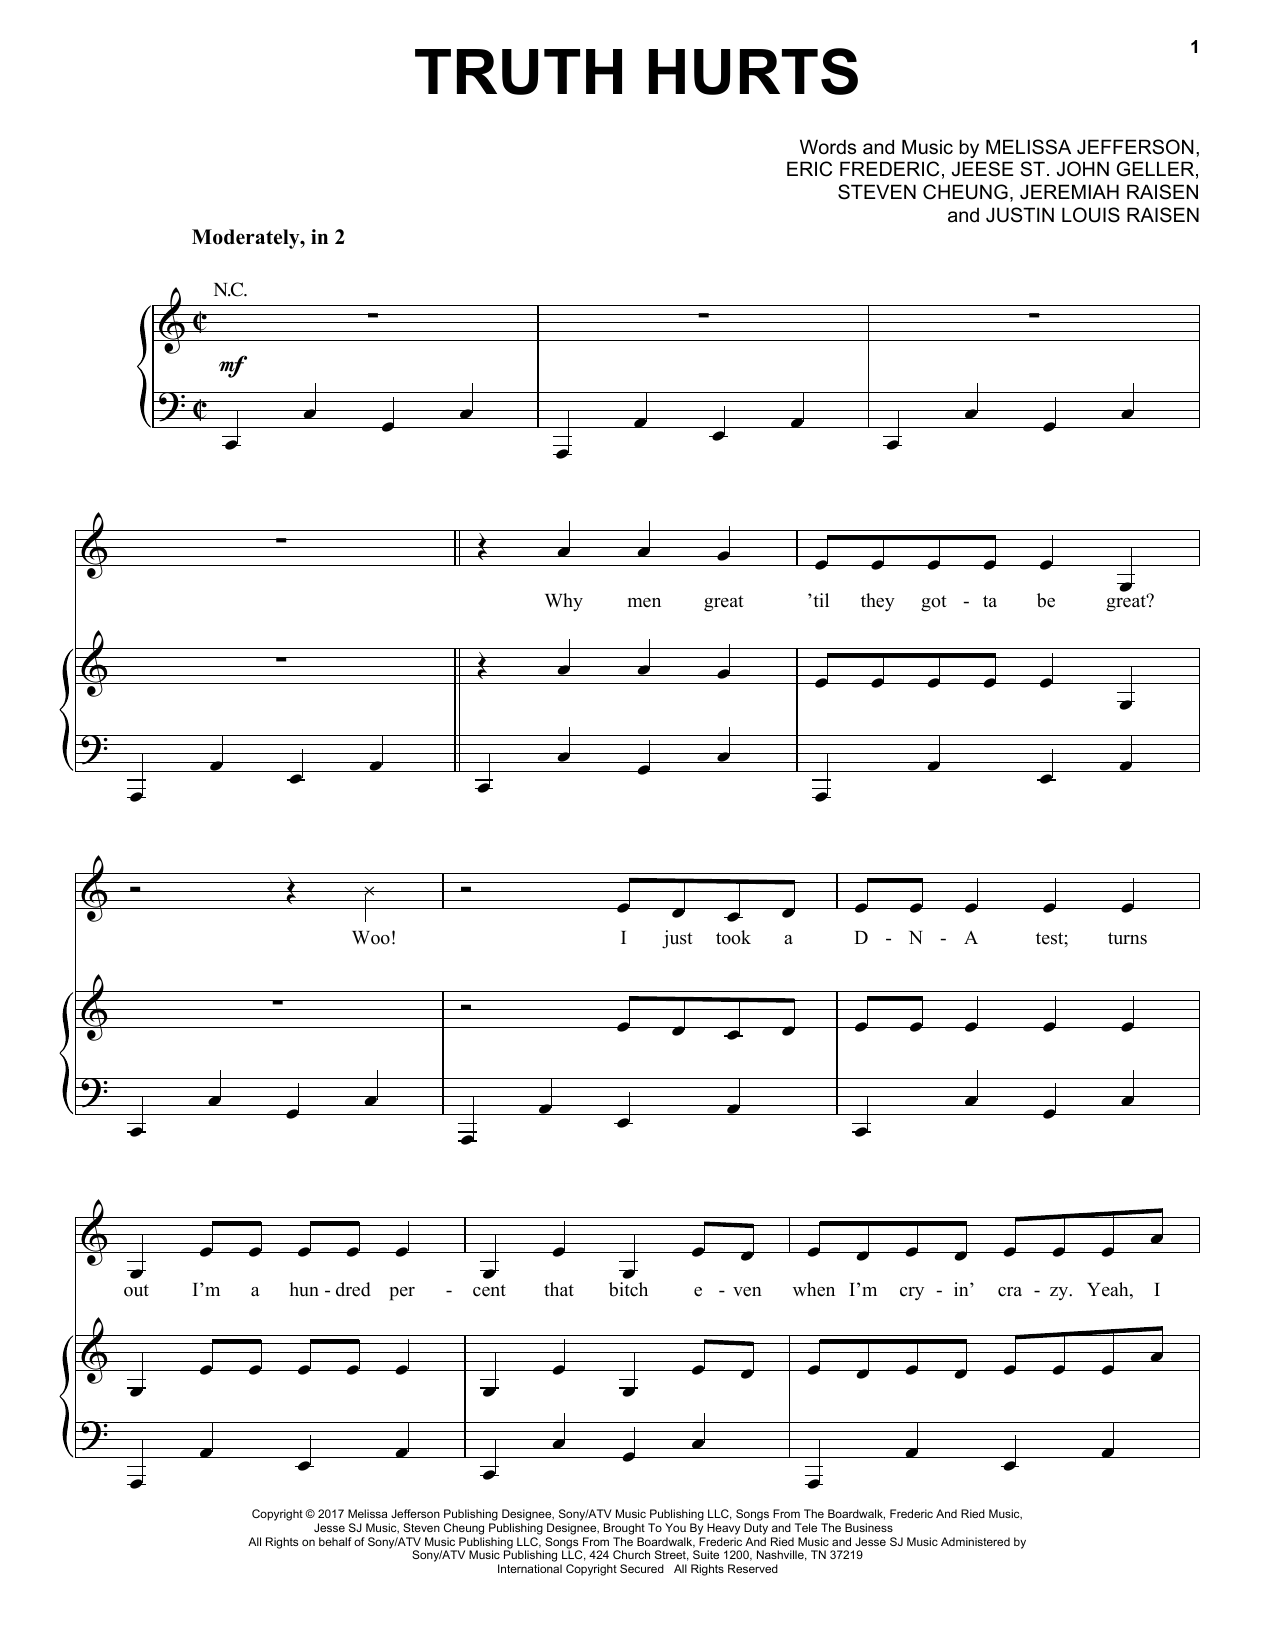 Lizzo Truth Hurts sheet music notes and chords. Download Printable PDF.